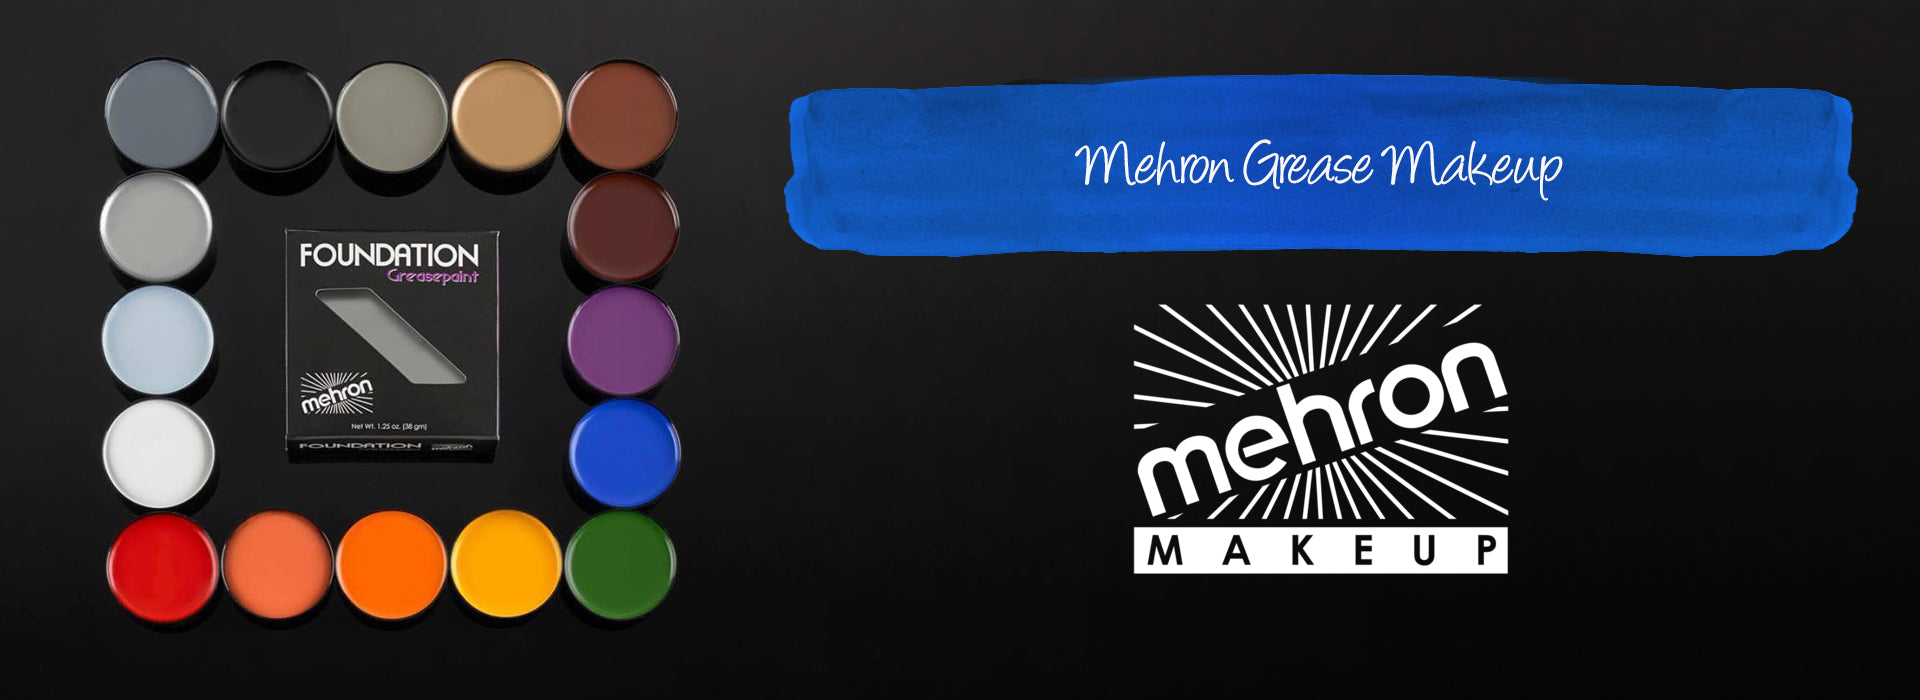 Mehron Grease Makeup